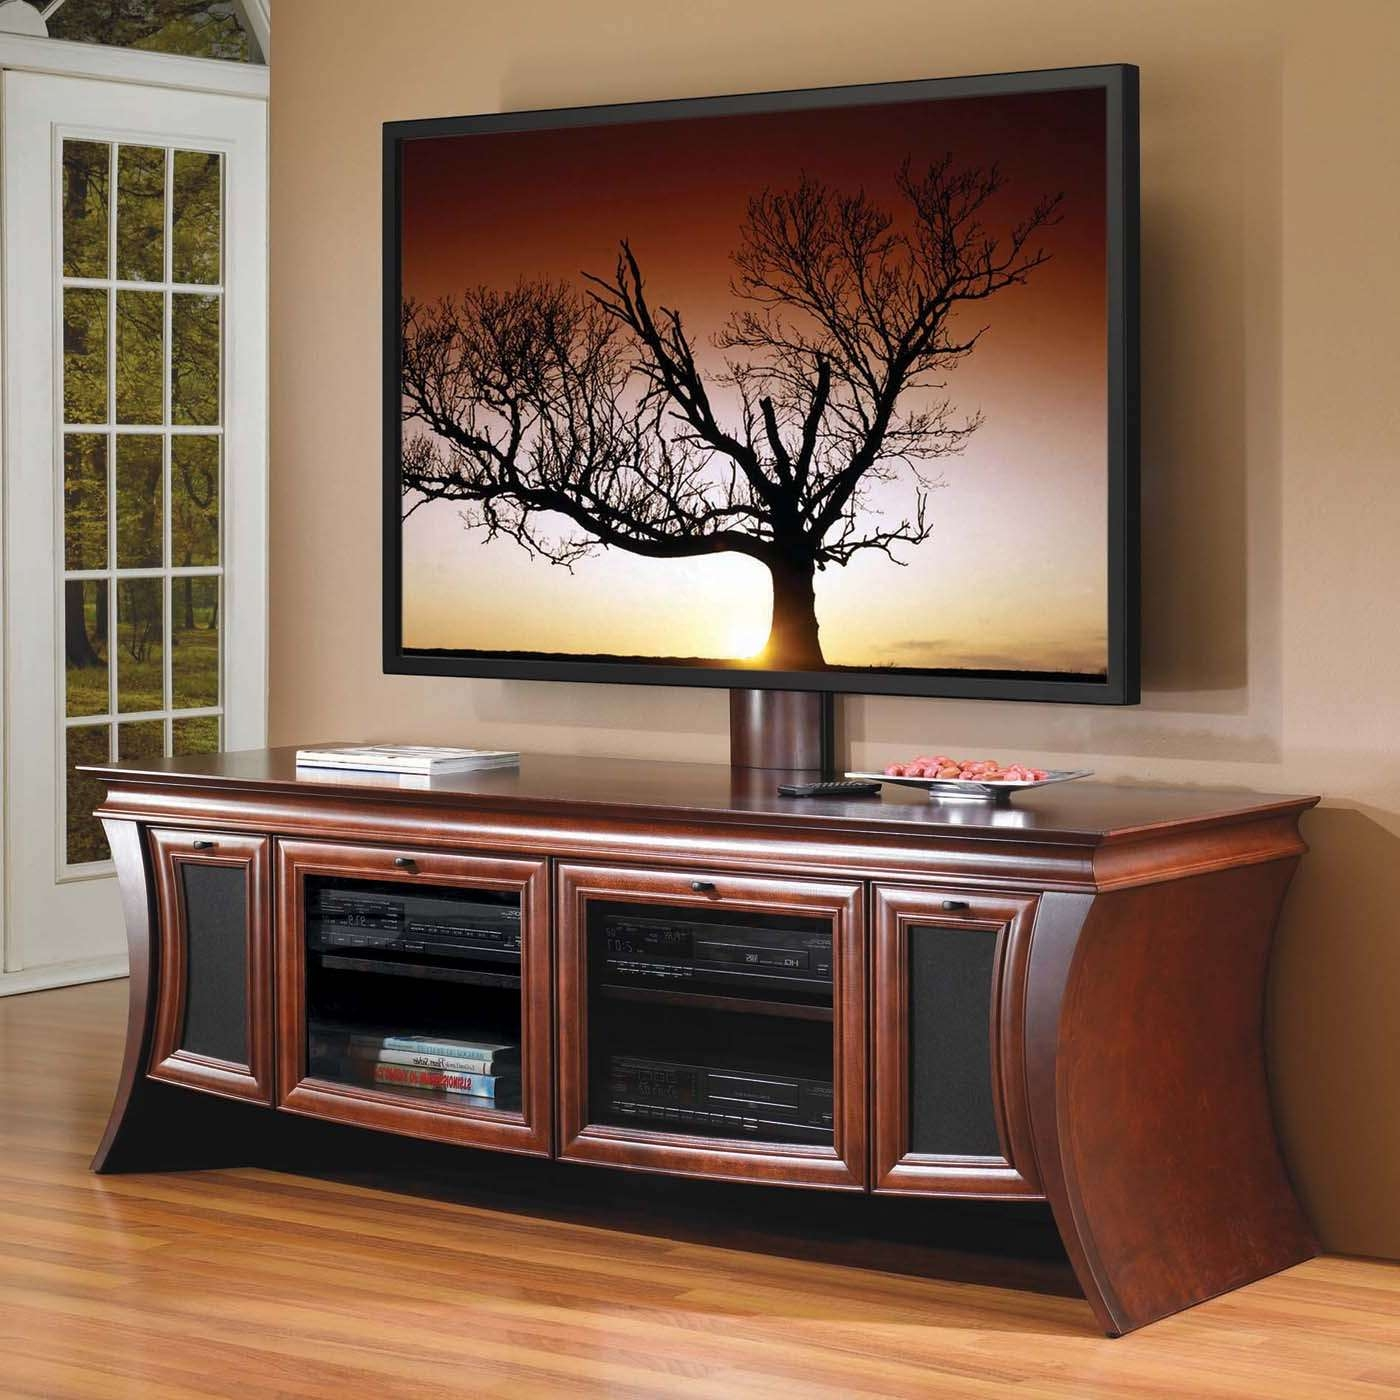 Deluxe Mount Sauder And Mount Mirage Panel Tv Stand As Wells As Pertaining To Big Tv Cabinets (View 9 of 20)